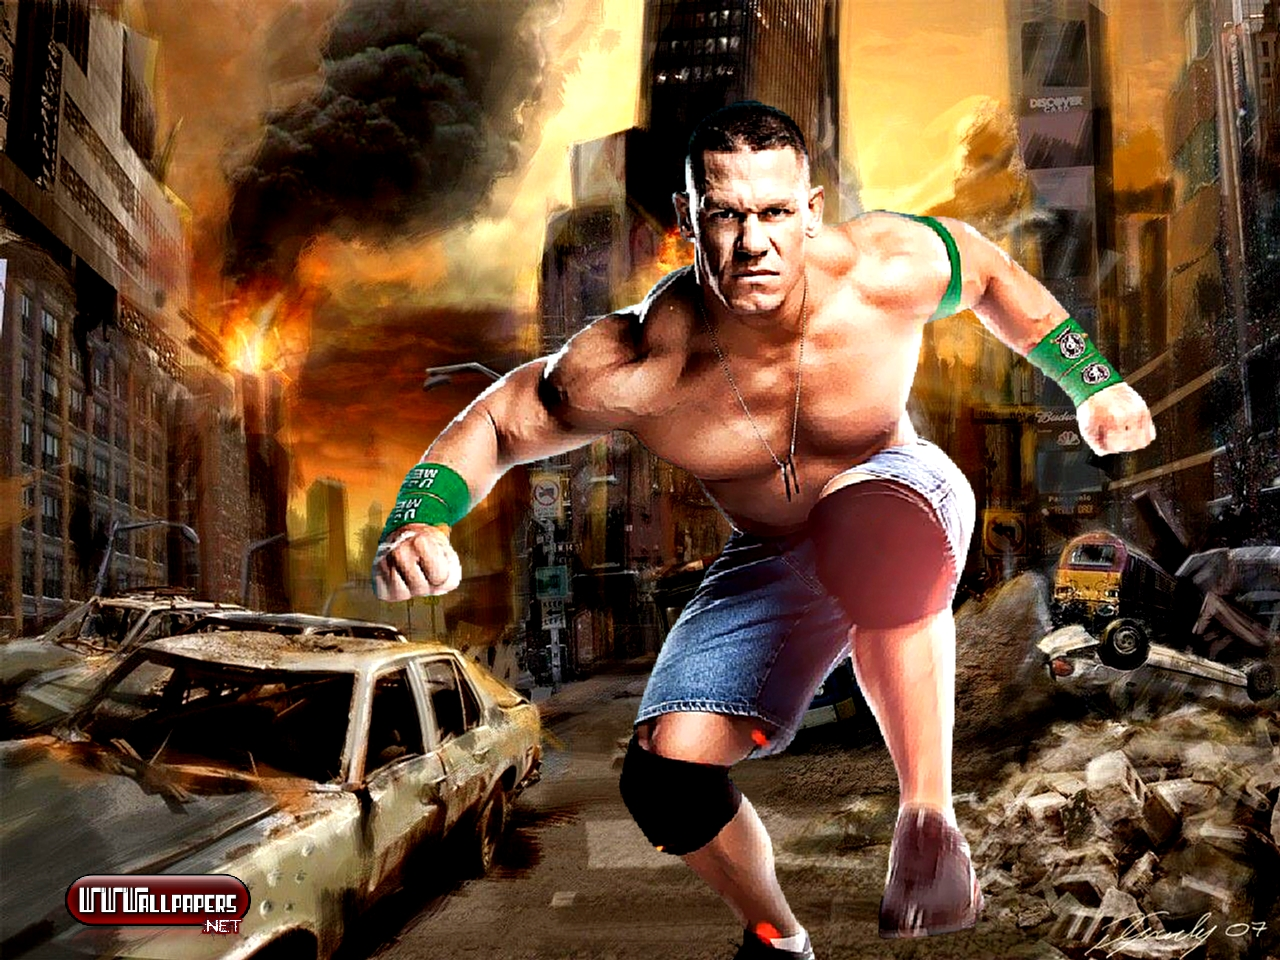 wwe john cena wallpapers hd free download 1280x960